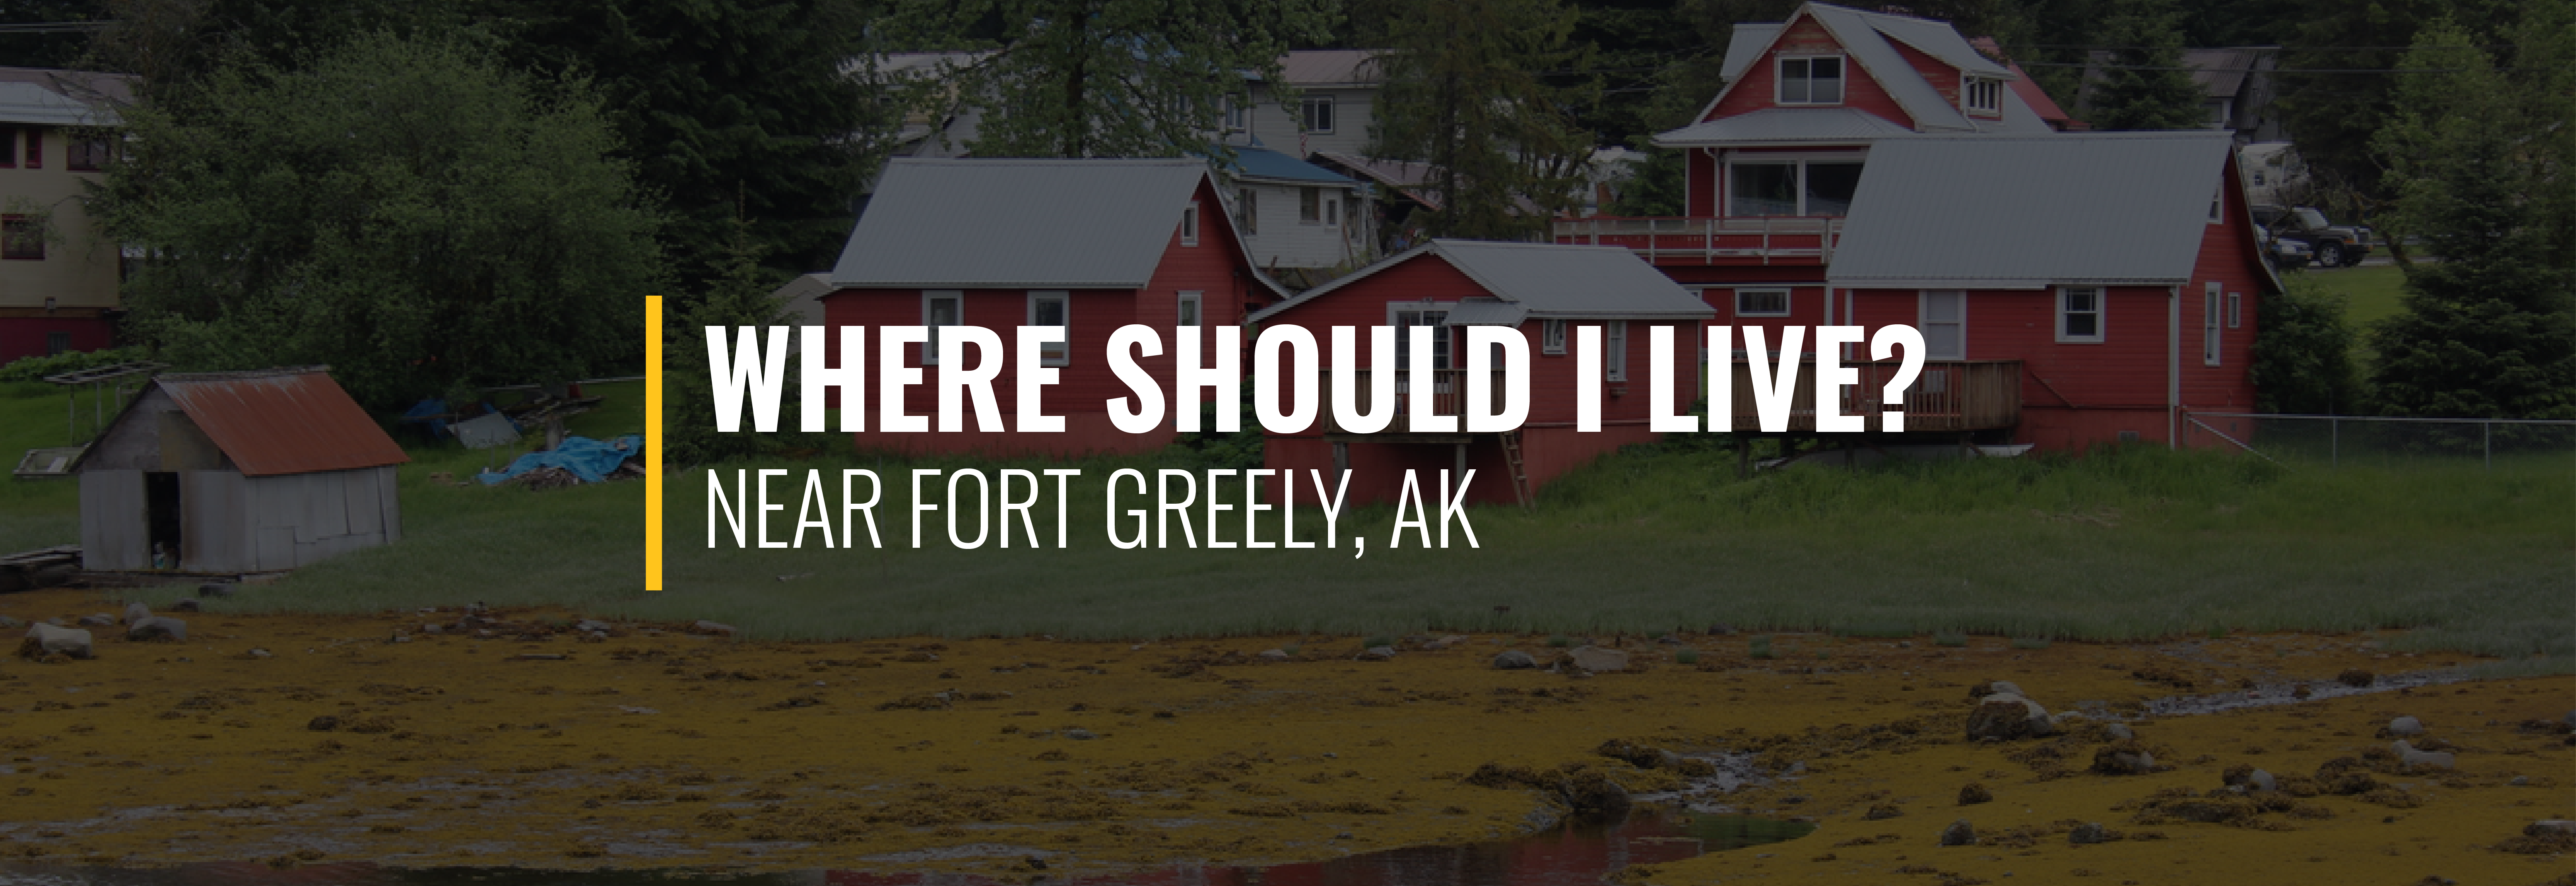 Where Should I Live Near Fort Greely?